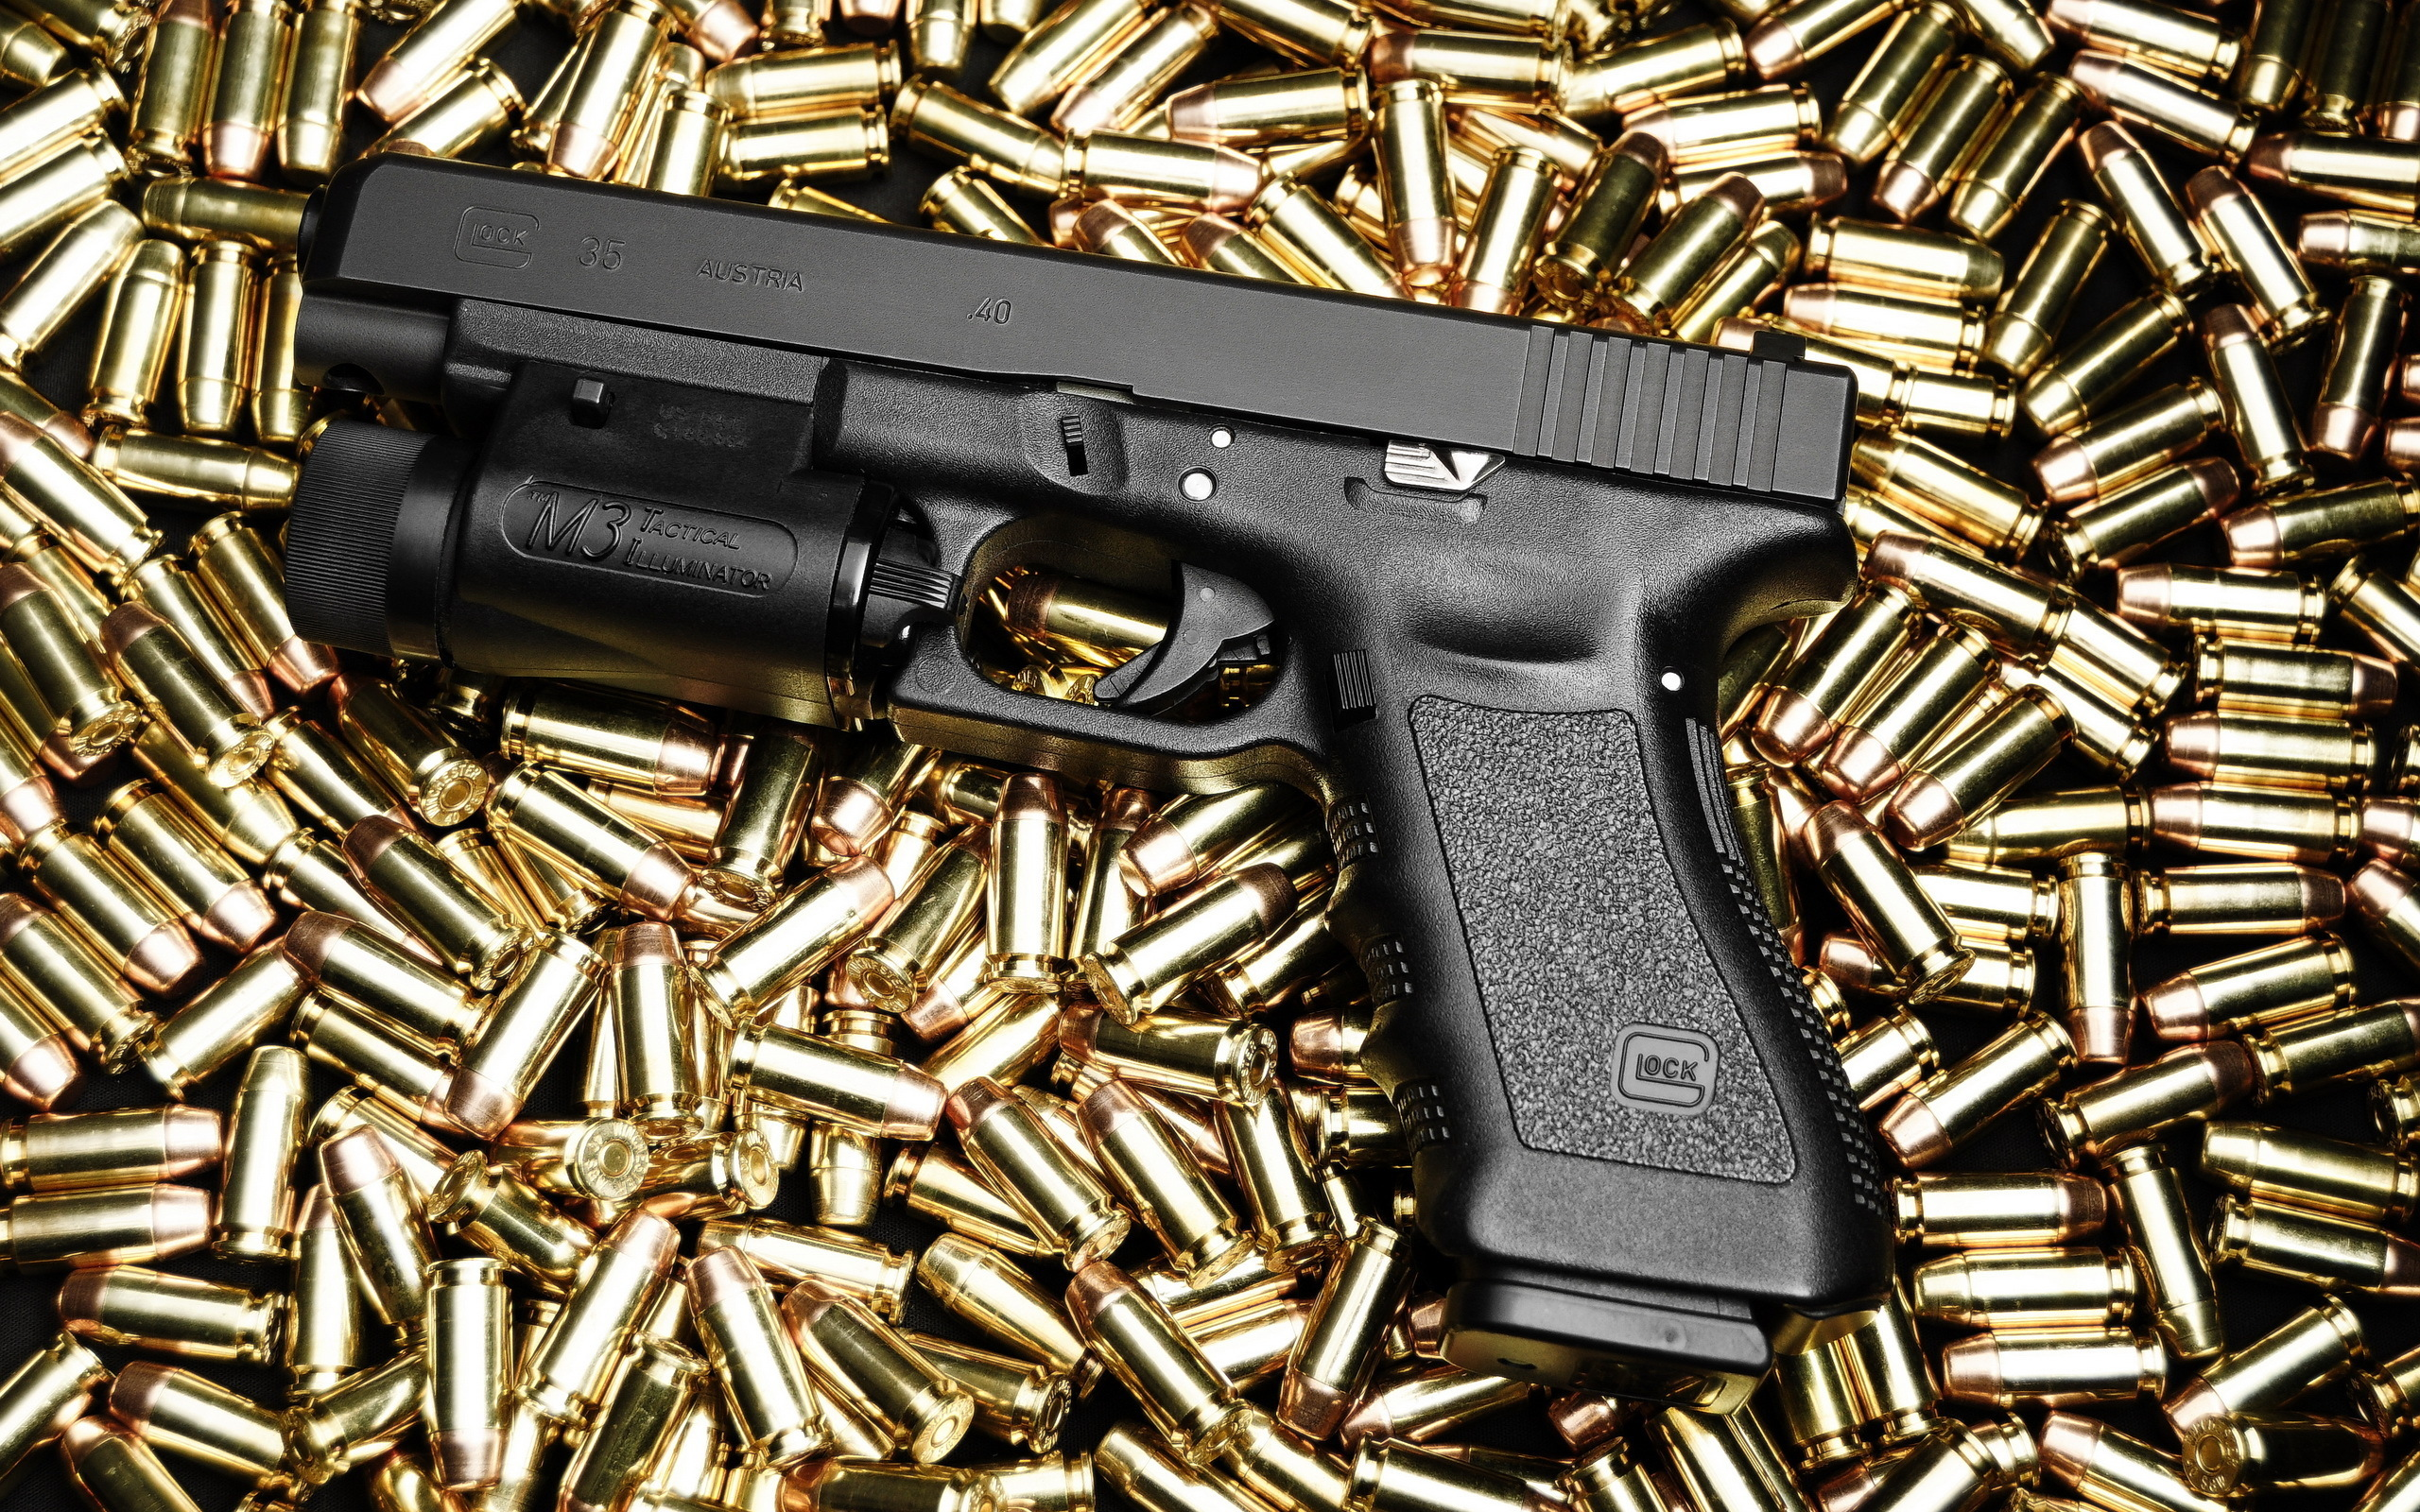 Glock Wallpaper – Trendy Wallpaper Decoration For Your PC